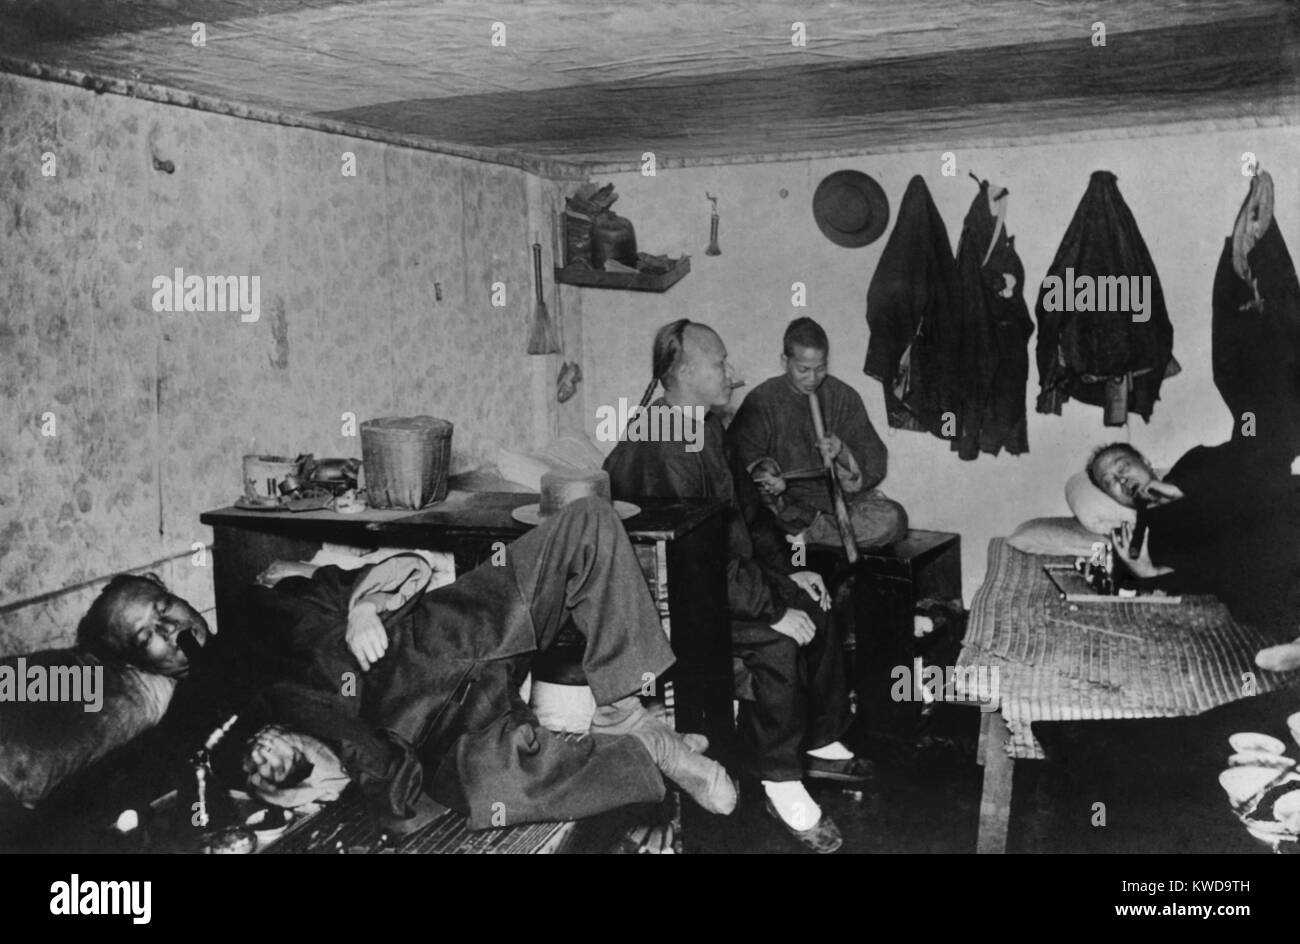 Four Chinese men smoking opium in a lodging house in San Francisco's Chinatown, c. 1905 (BSLOC_2016_10_74) - Stock Image